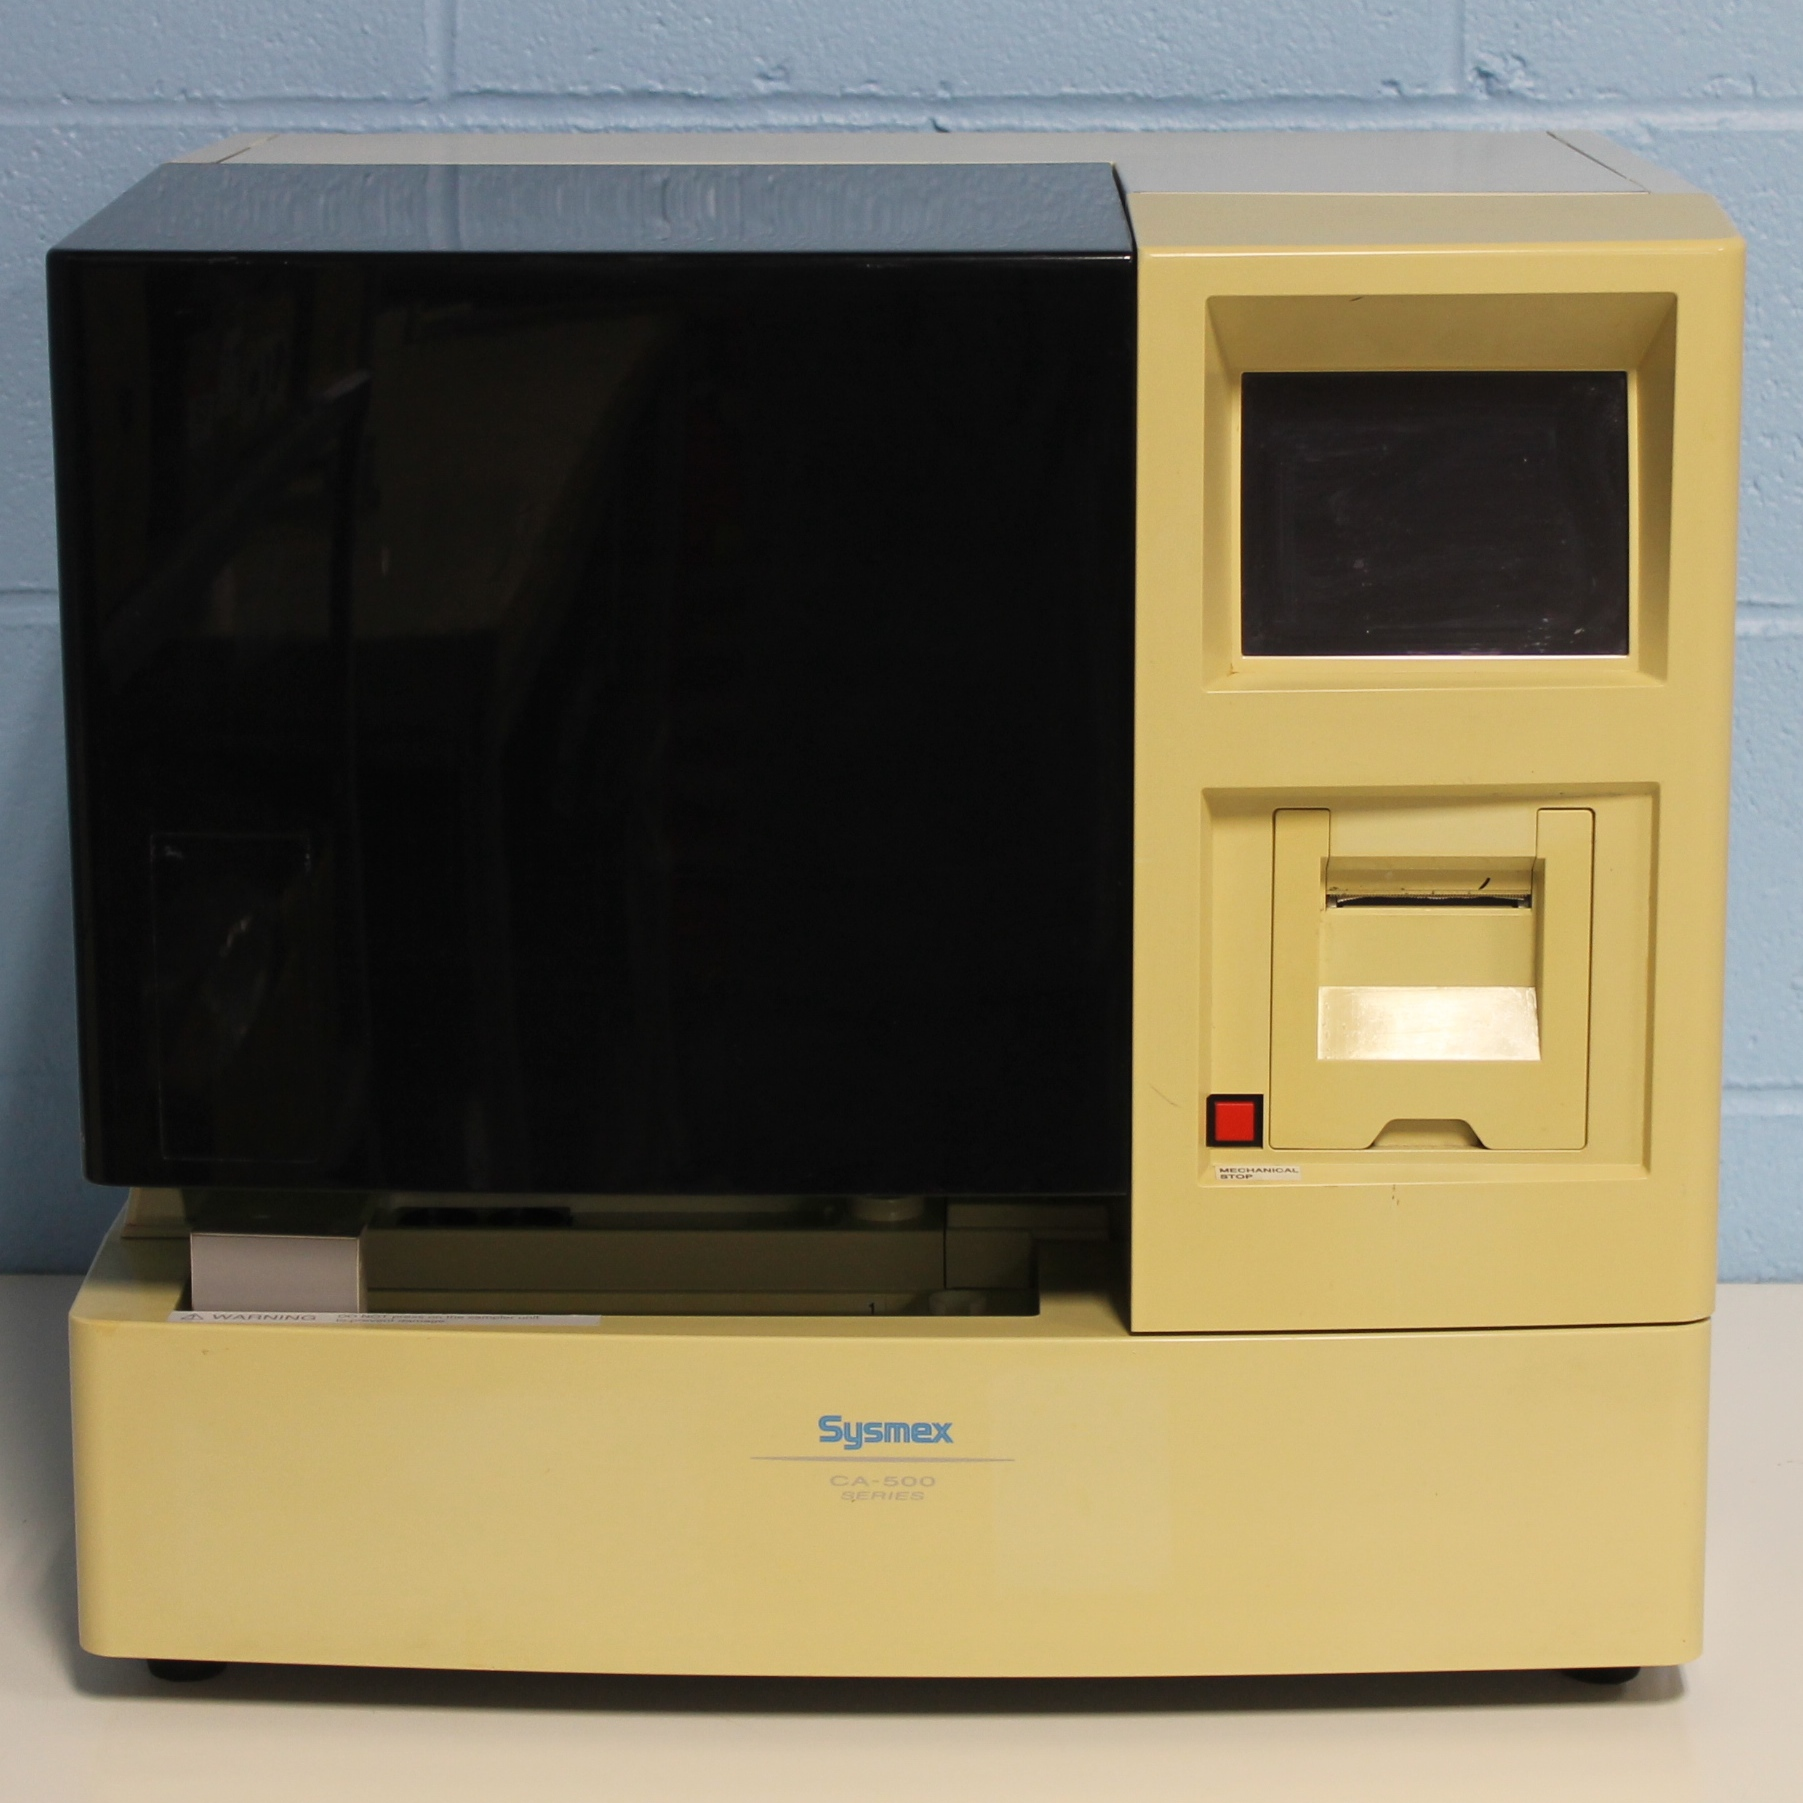 Sysmex CA-540 Coagulation Analyzer Image